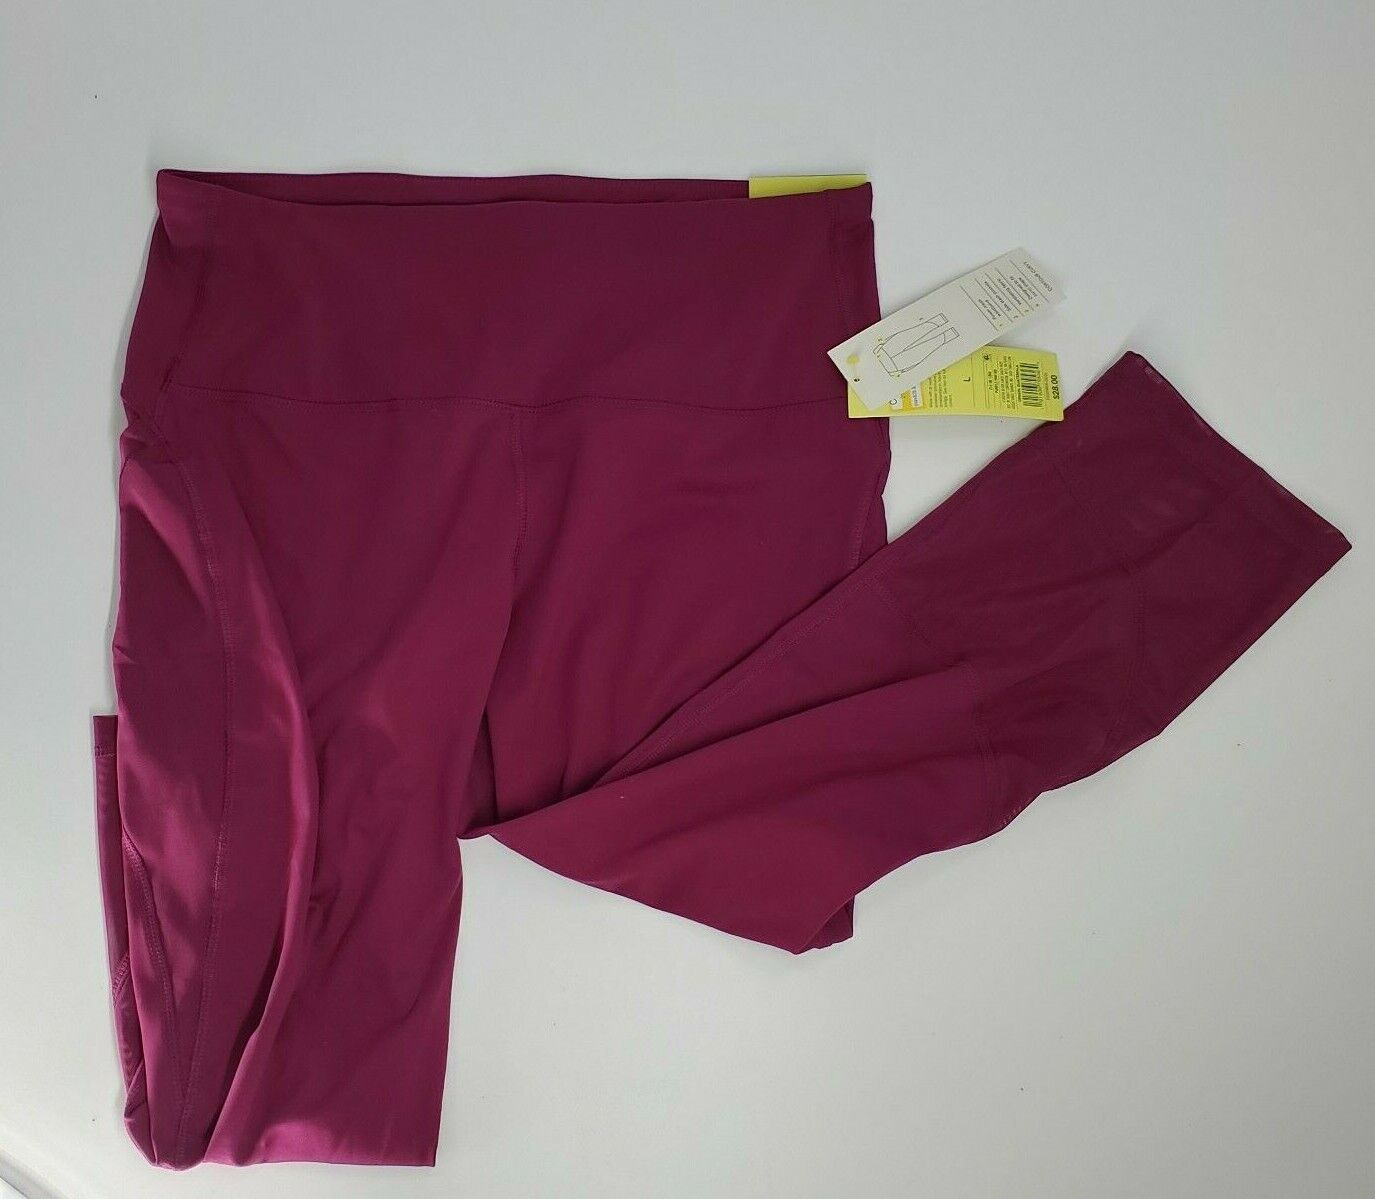 All In Motion Women's Contour Curvy High-waisted Capri Leggings Purple Size S